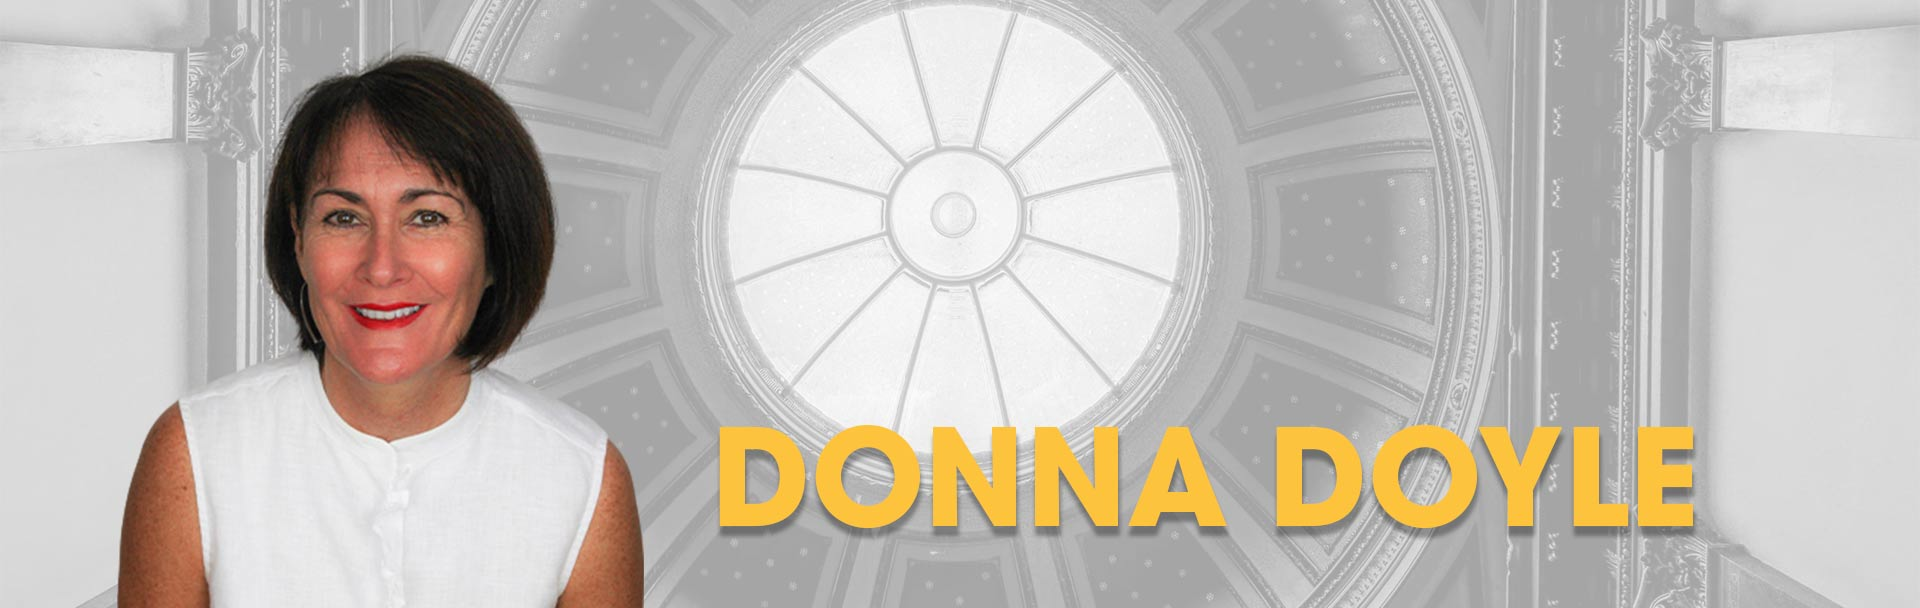 Donna Doyle is part of Saturday Night Demonstrations of Mediumship at the Sir Arthur Conan Doyle Centre